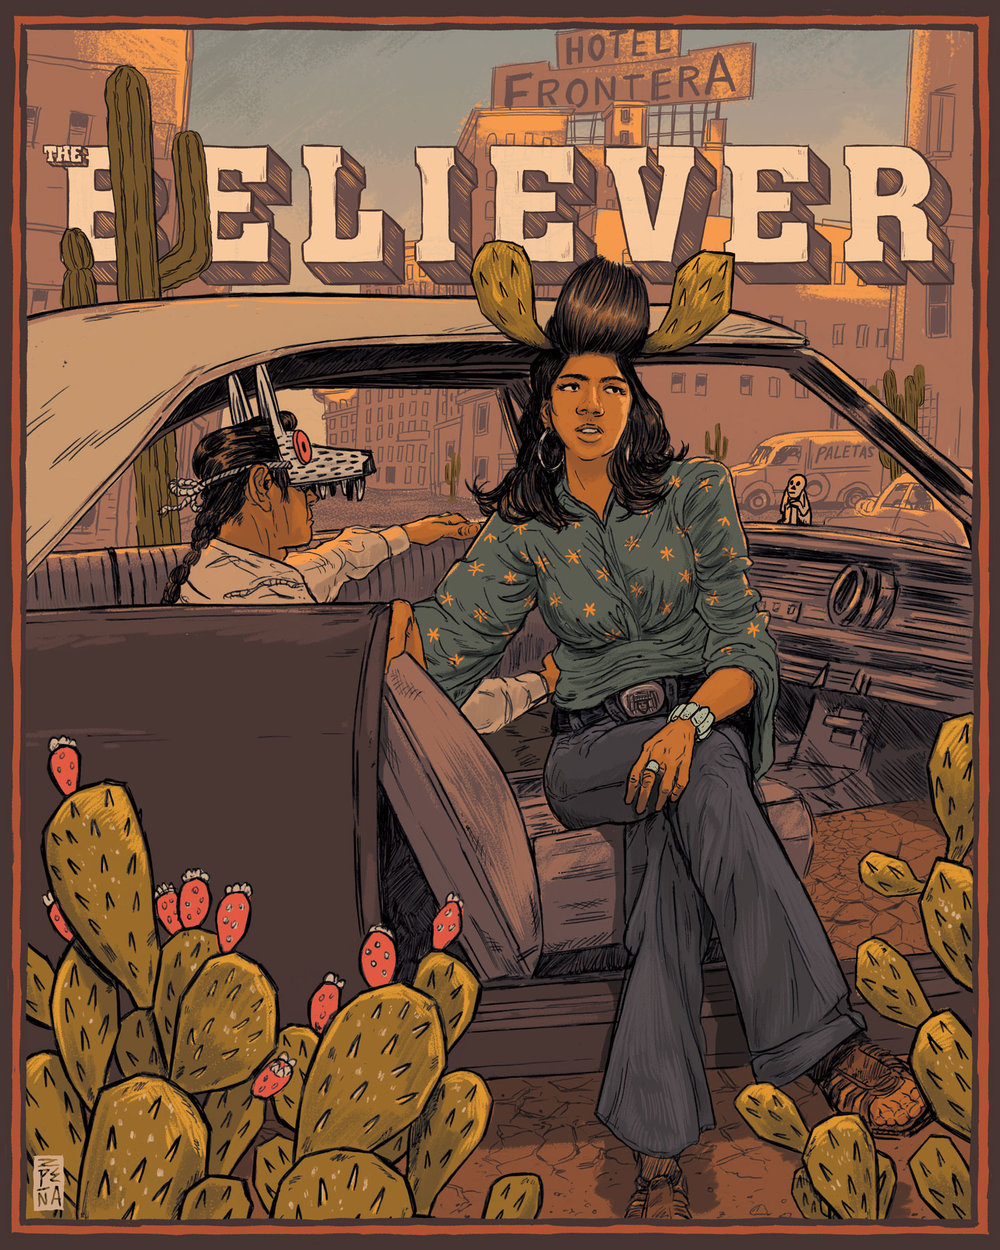 Beleiver-Cover-w01.jpg